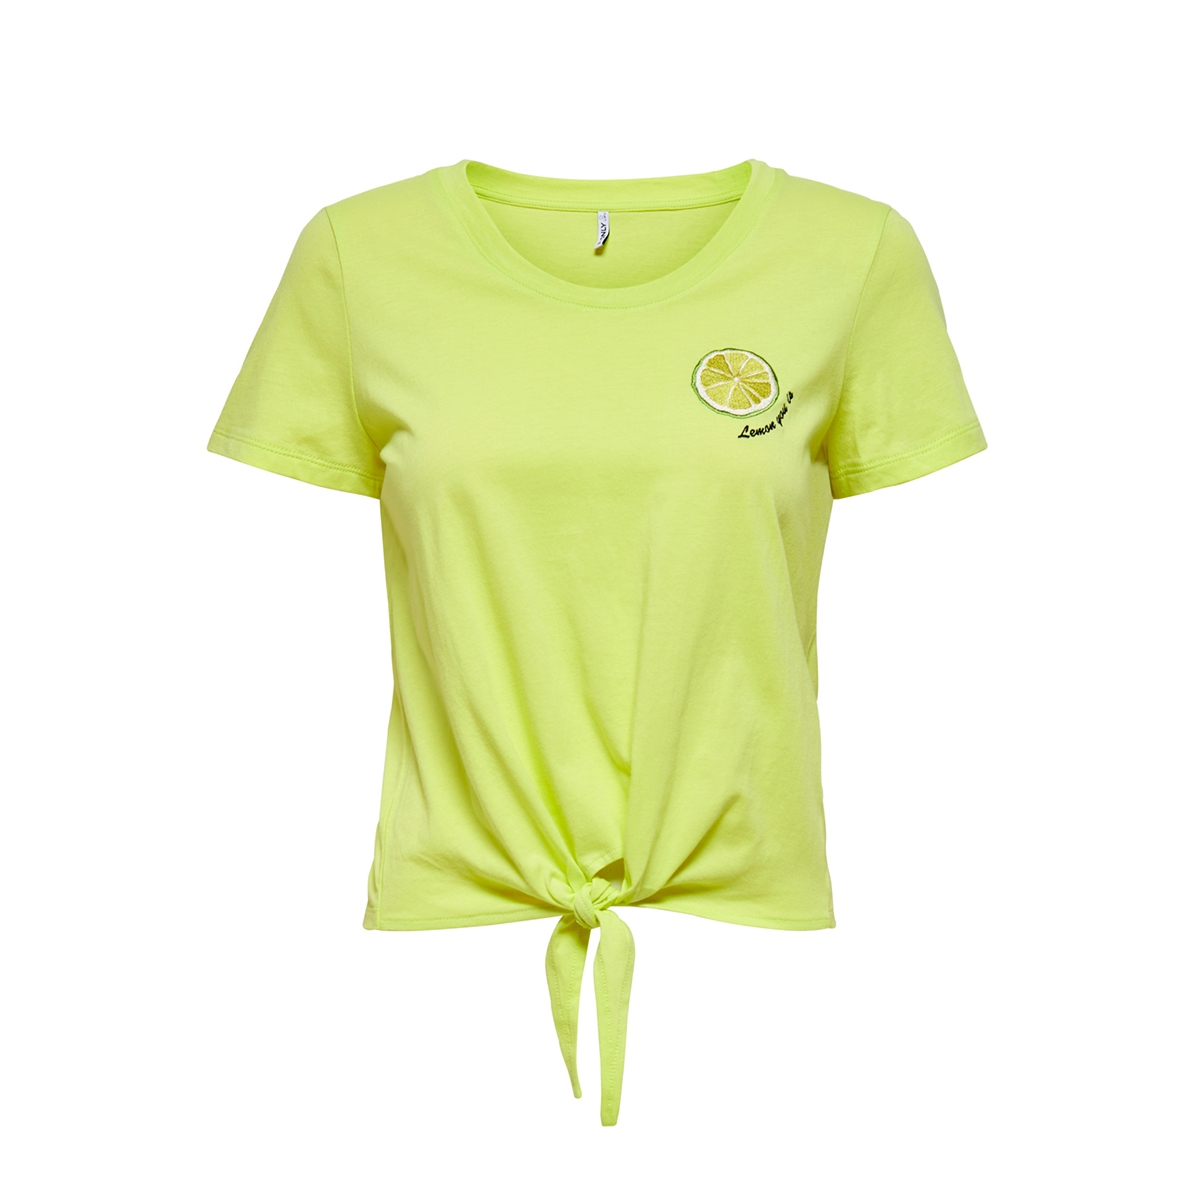 onlfruity life s/s top box jrs 15206148 only t-shirt sunny lime/lime